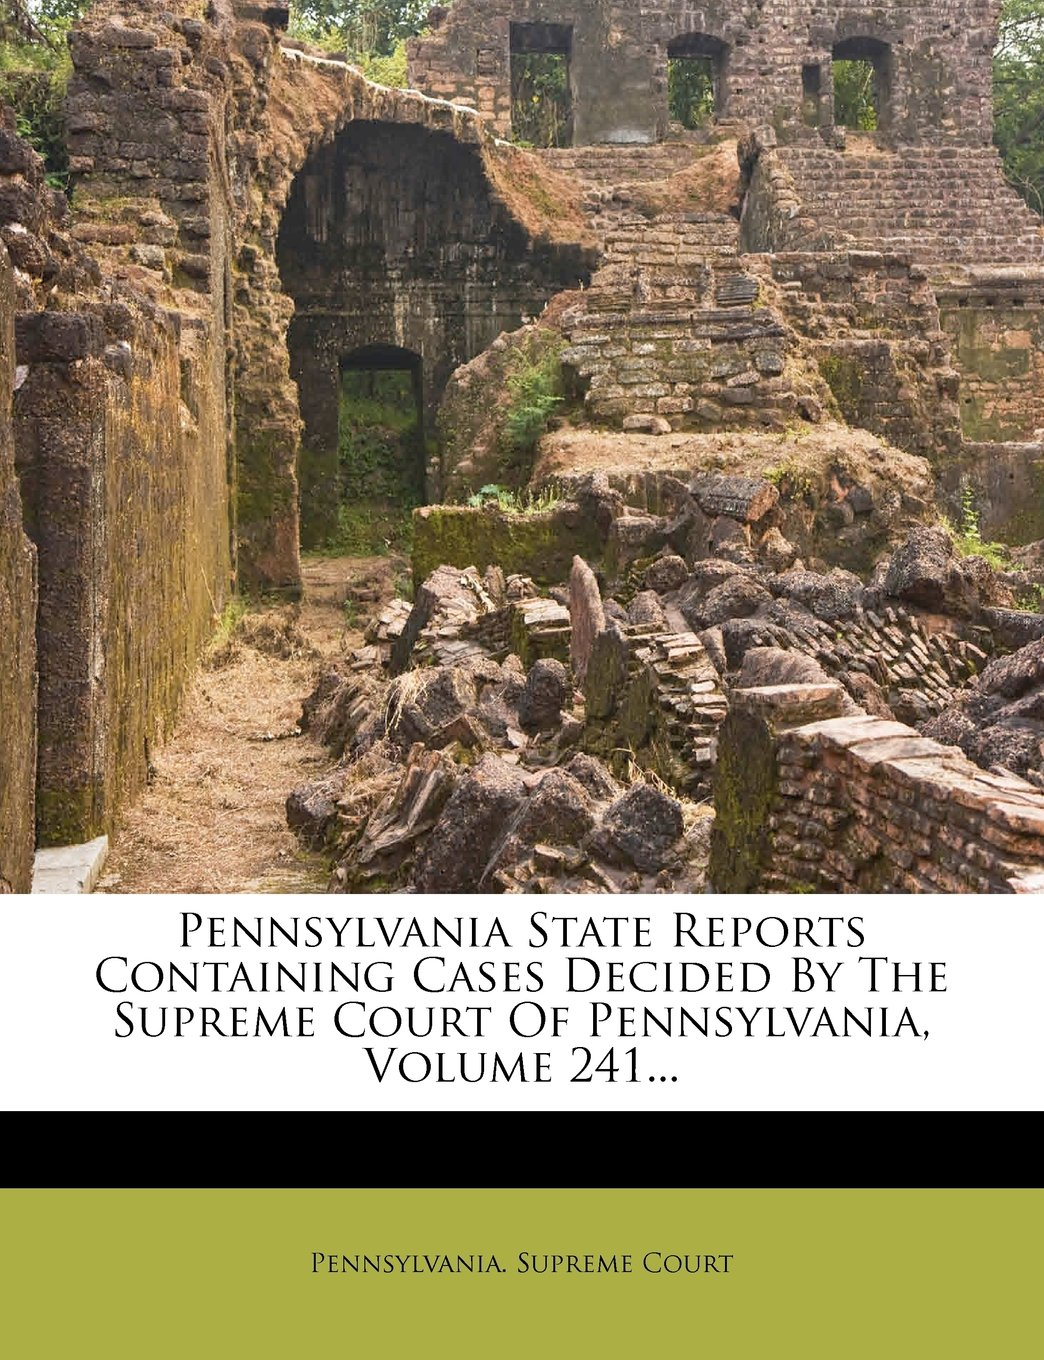 Pennsylvania State Reports Containing Cases Decided by the Supreme Court of Pennsylvania, Volume 241... pdf